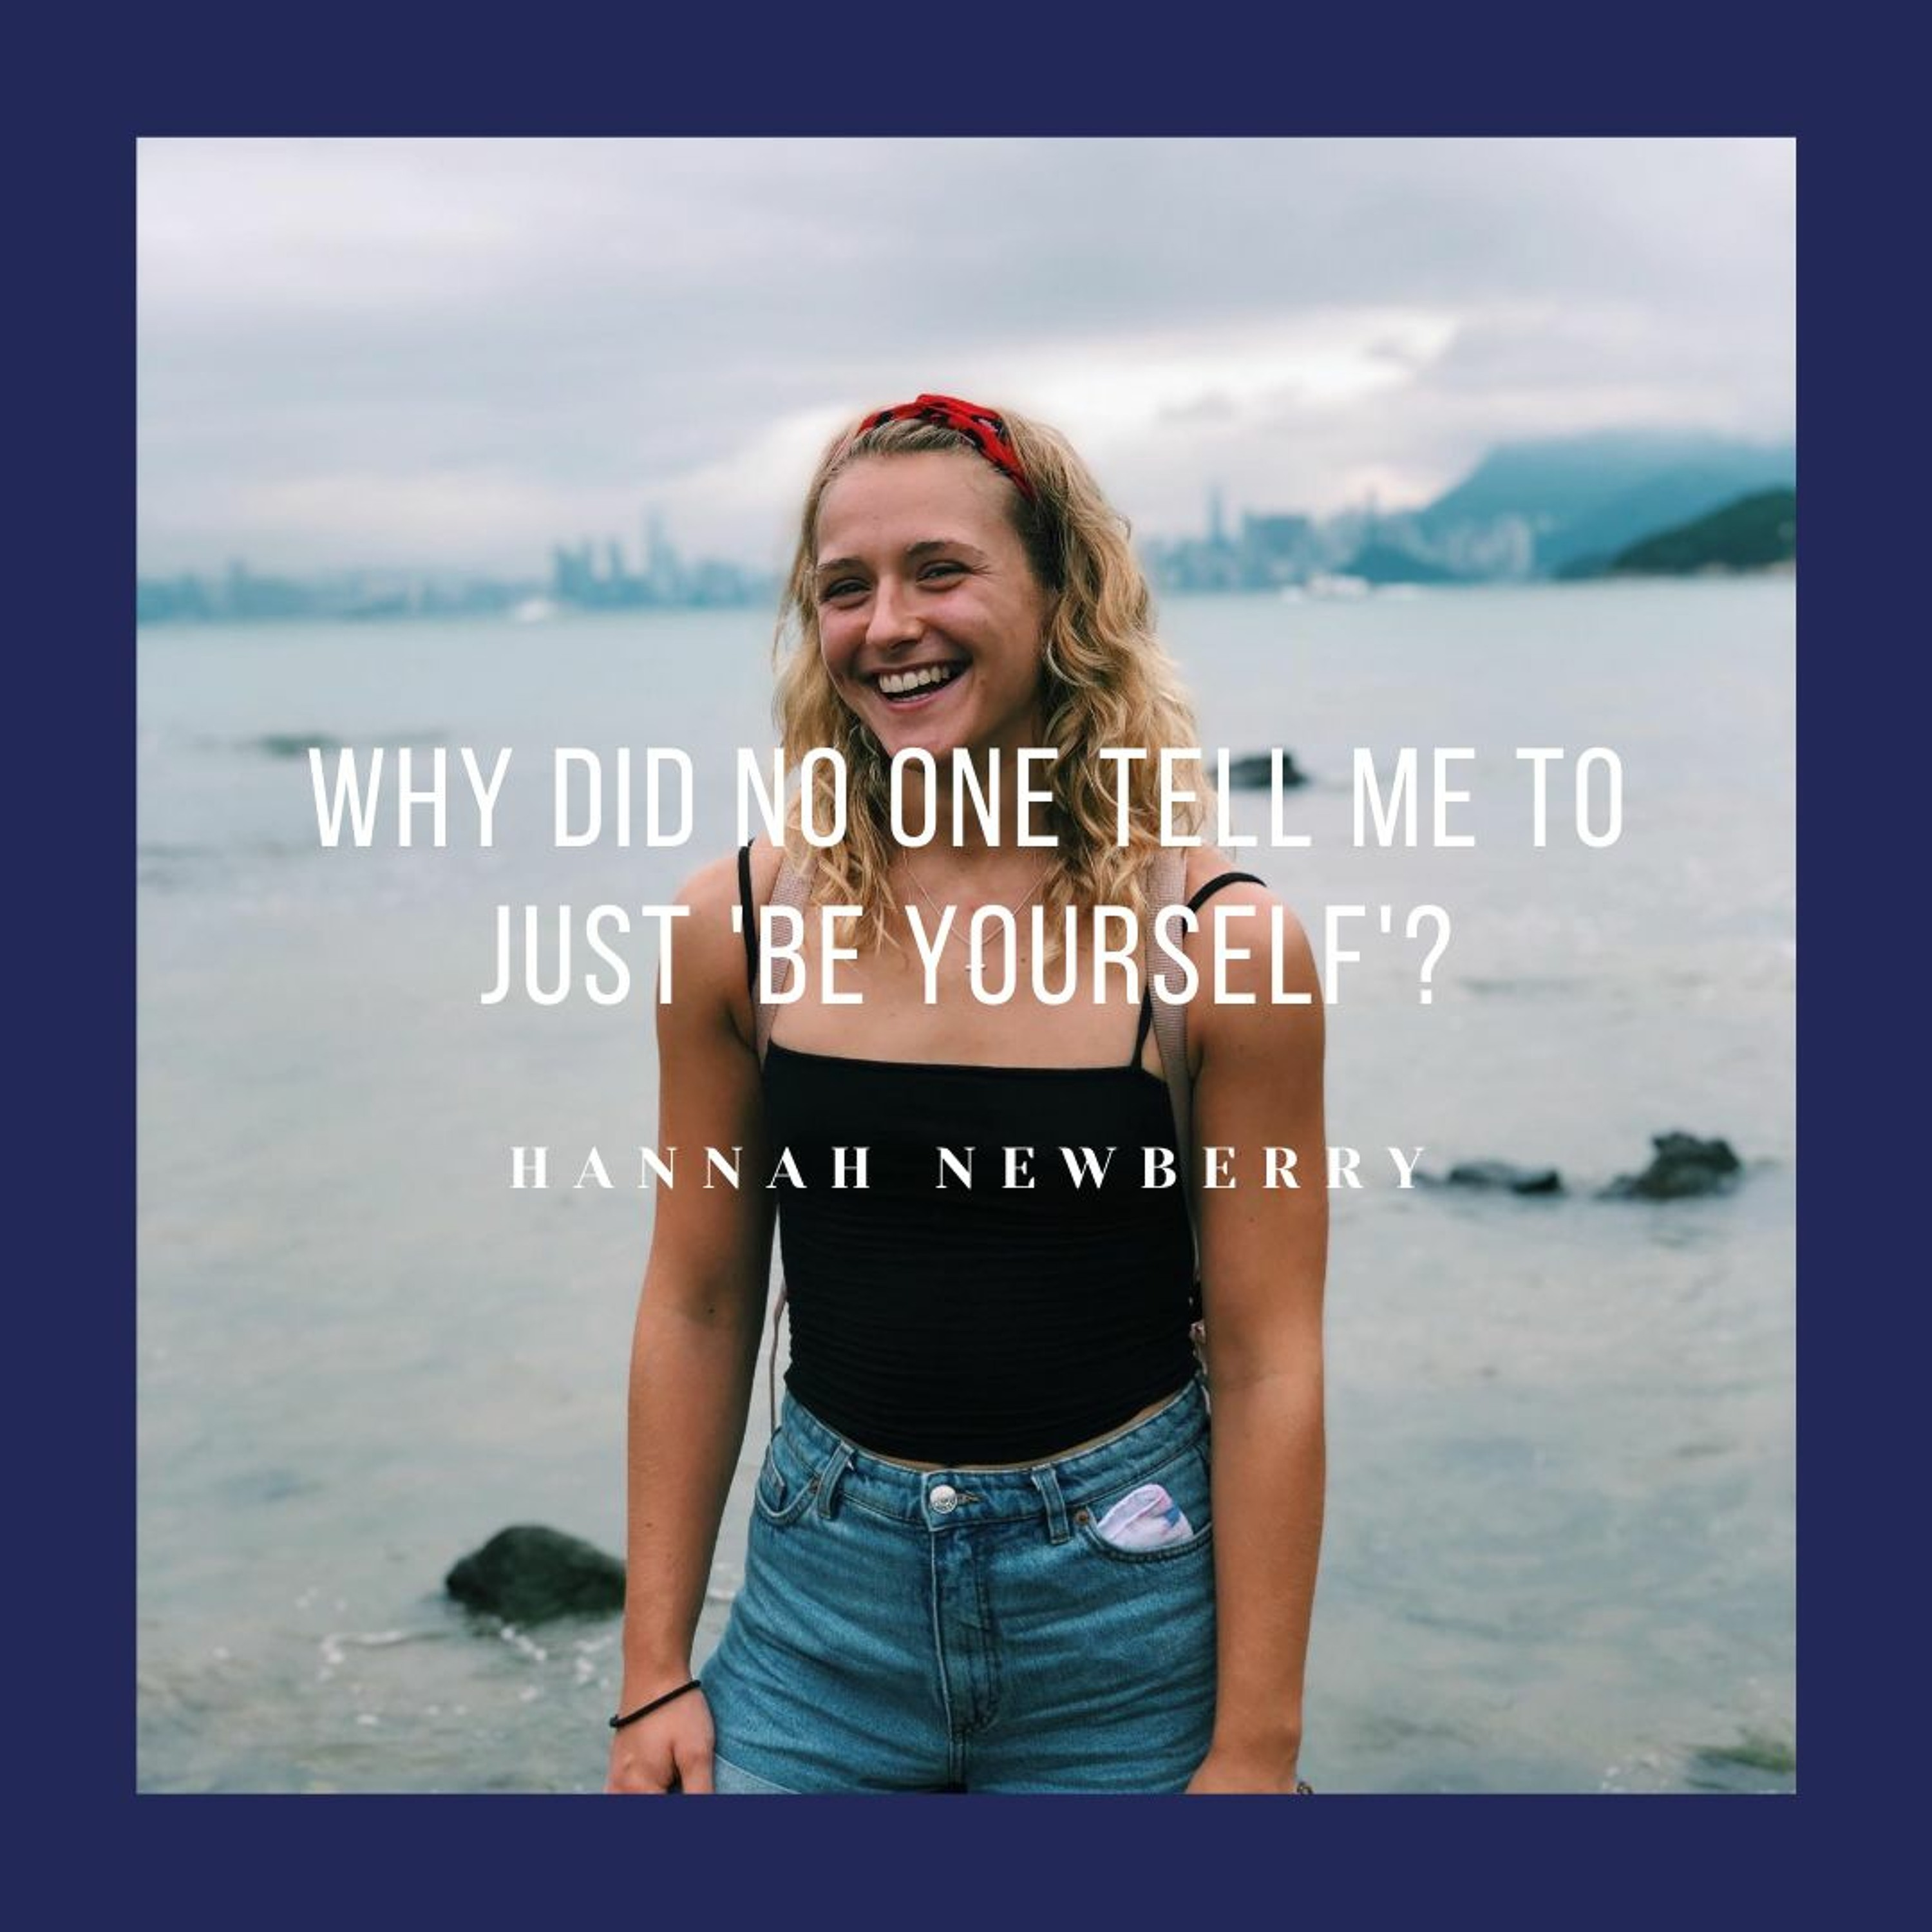 #2 Why did no one tell me to just 'be yourself'?